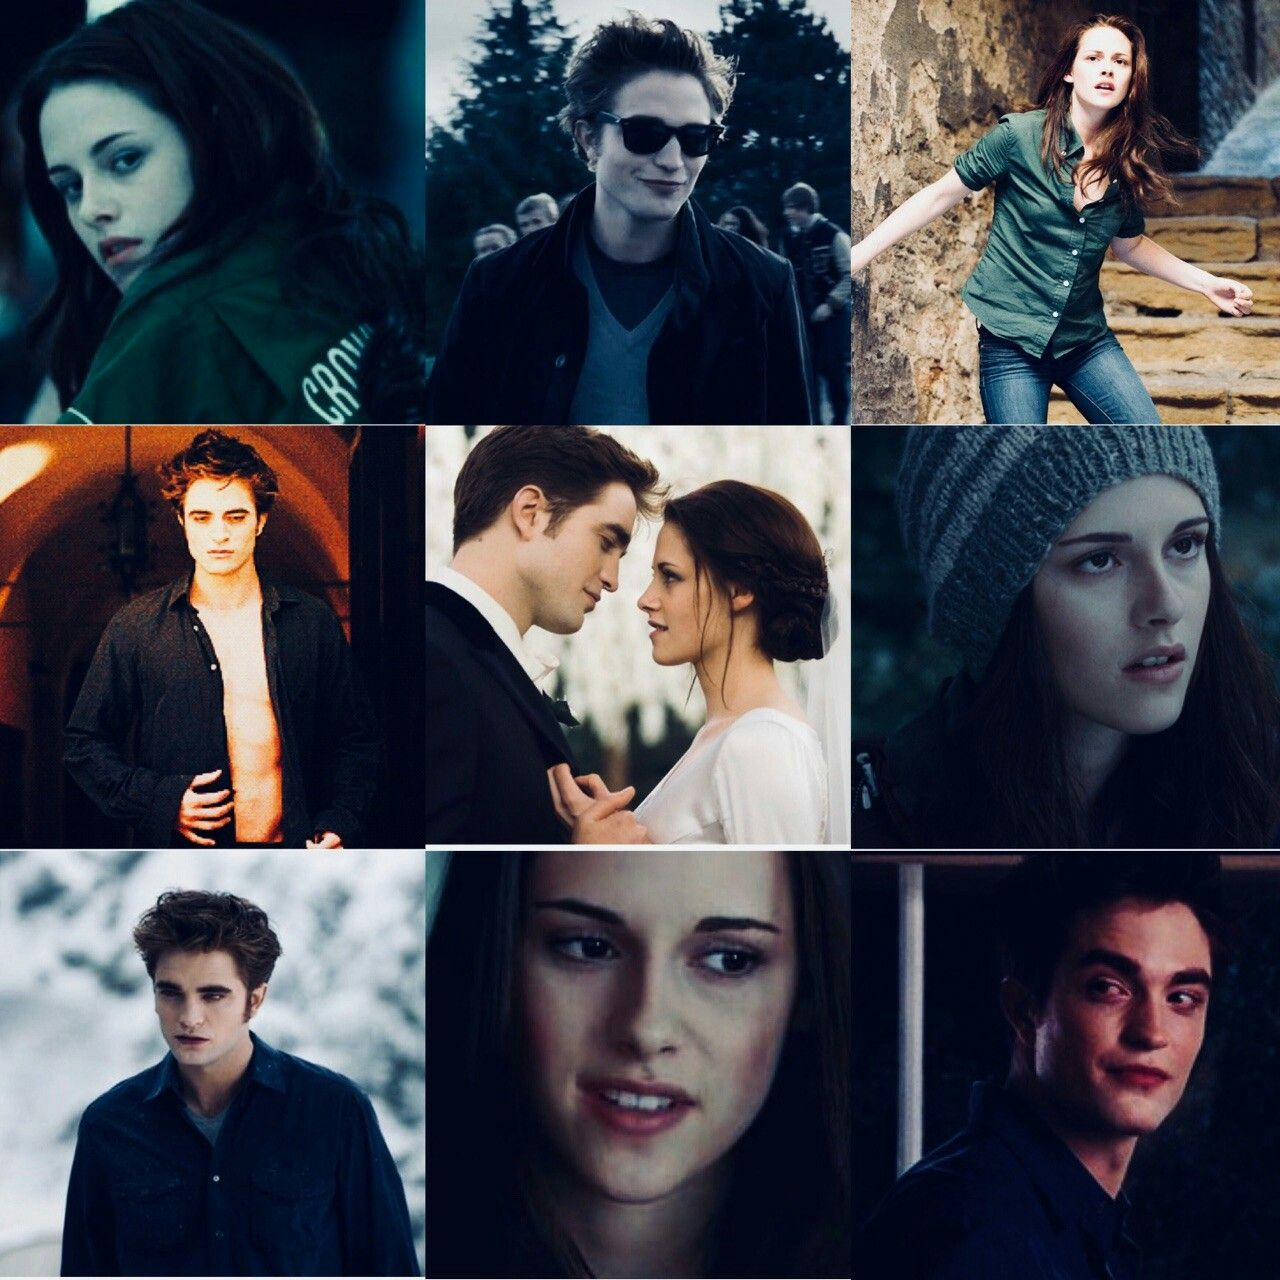 Pin by AnxiousDork on Twilight Fans United Twilight